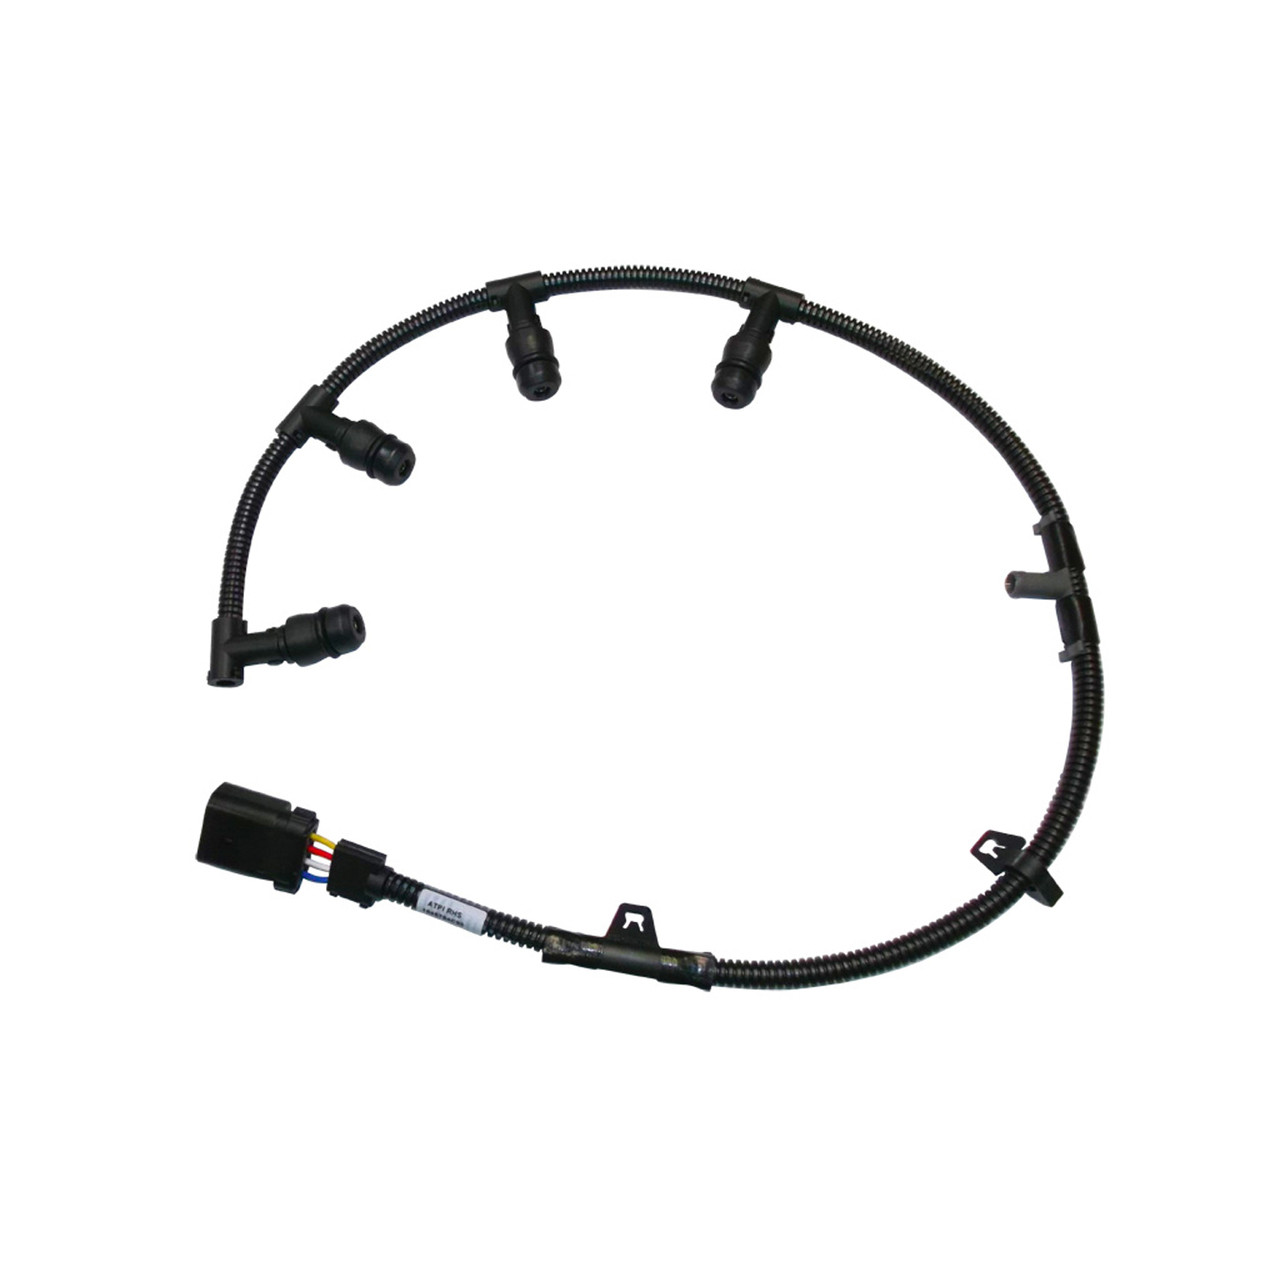 hight resolution of ford 6 0l glow plug harness passenger side wh02961 sku wh02961 upc 613111101032